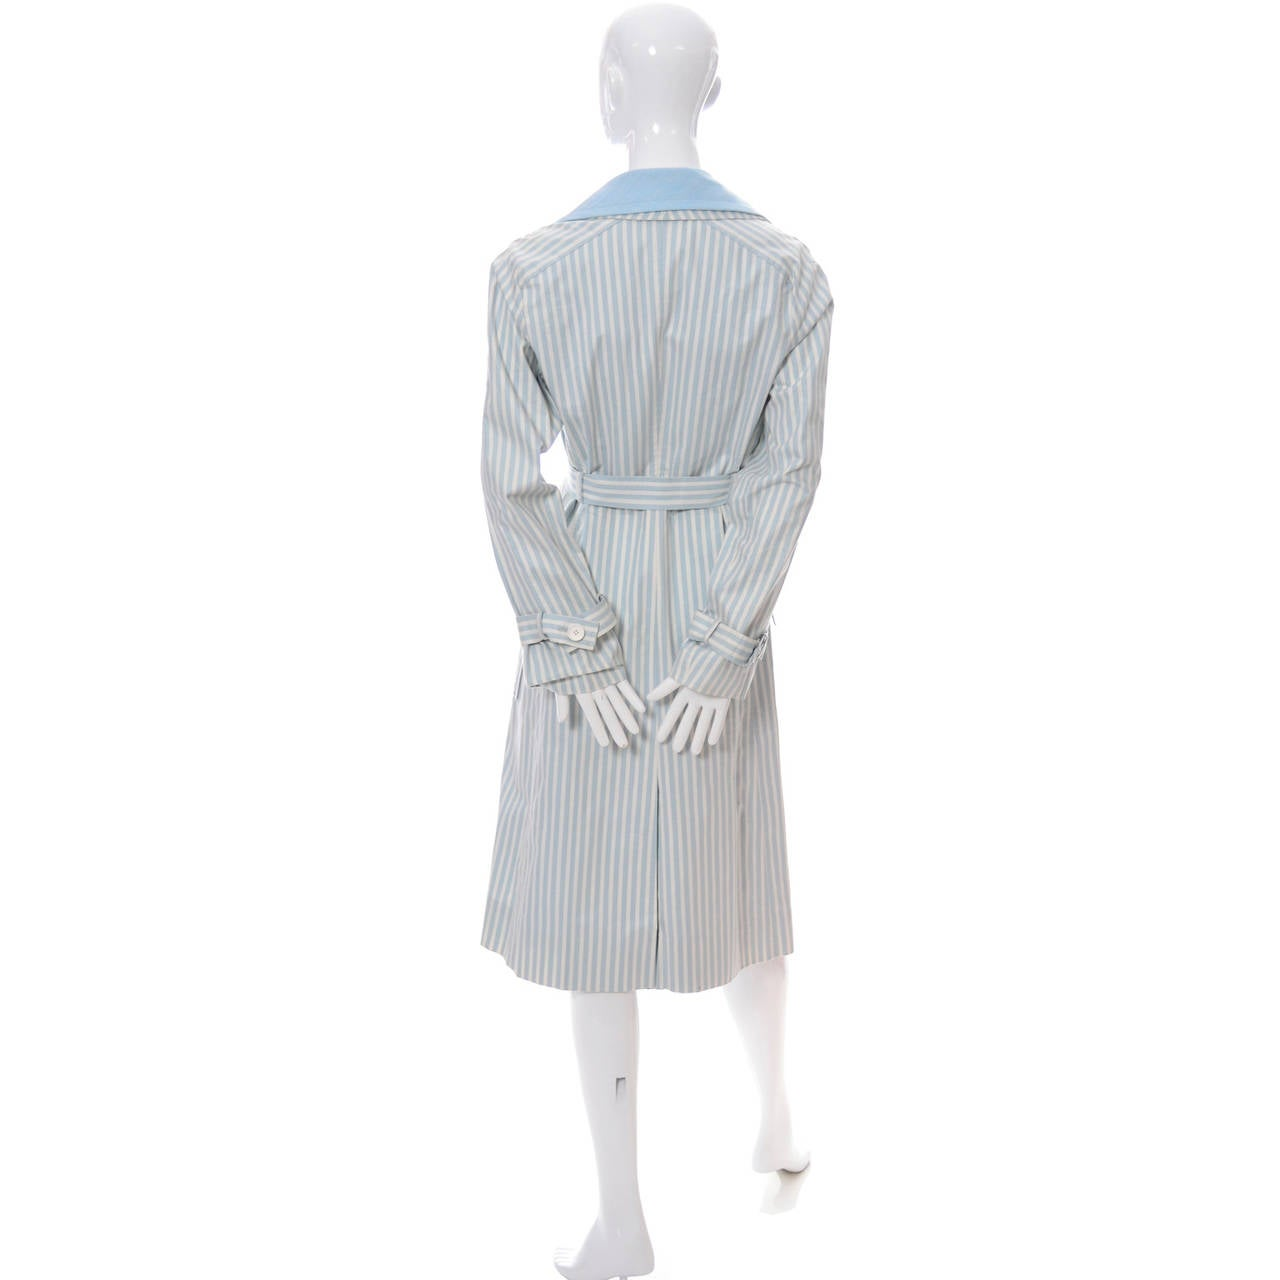 Givenchy Nouvelle Boutique 1970s Blue Vintage Dress and Striped Coat Outfit 6